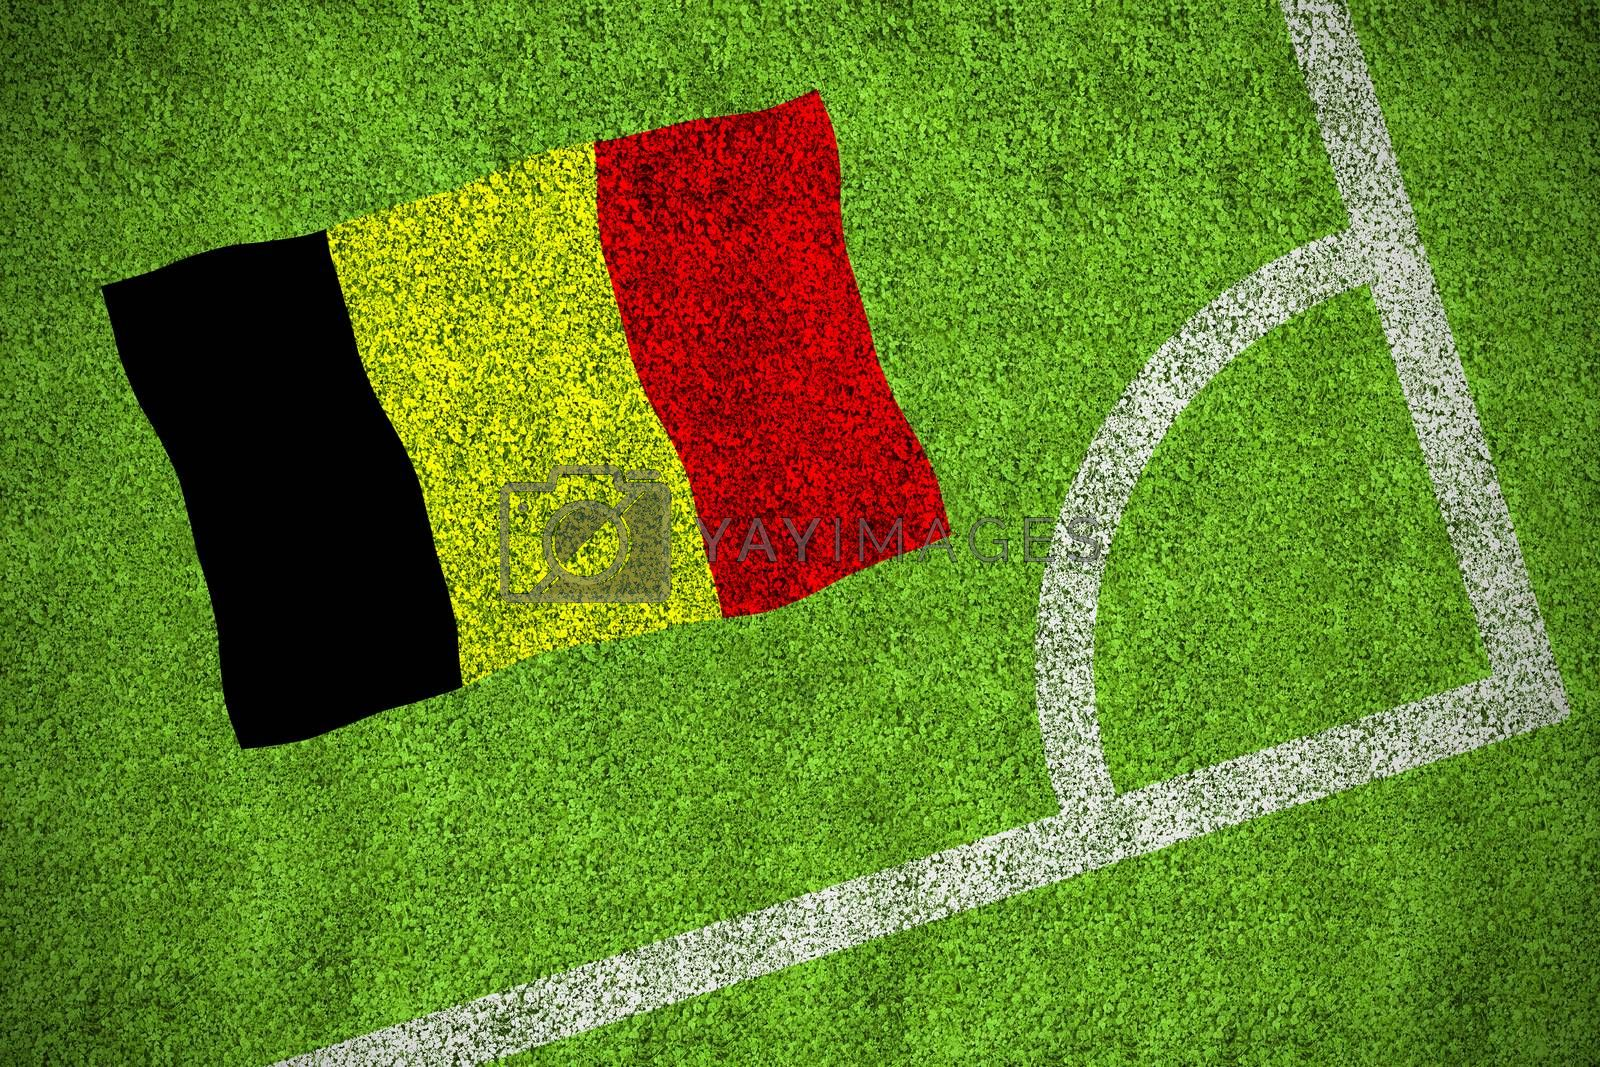 Belgium national flag by Wavebreakmedia